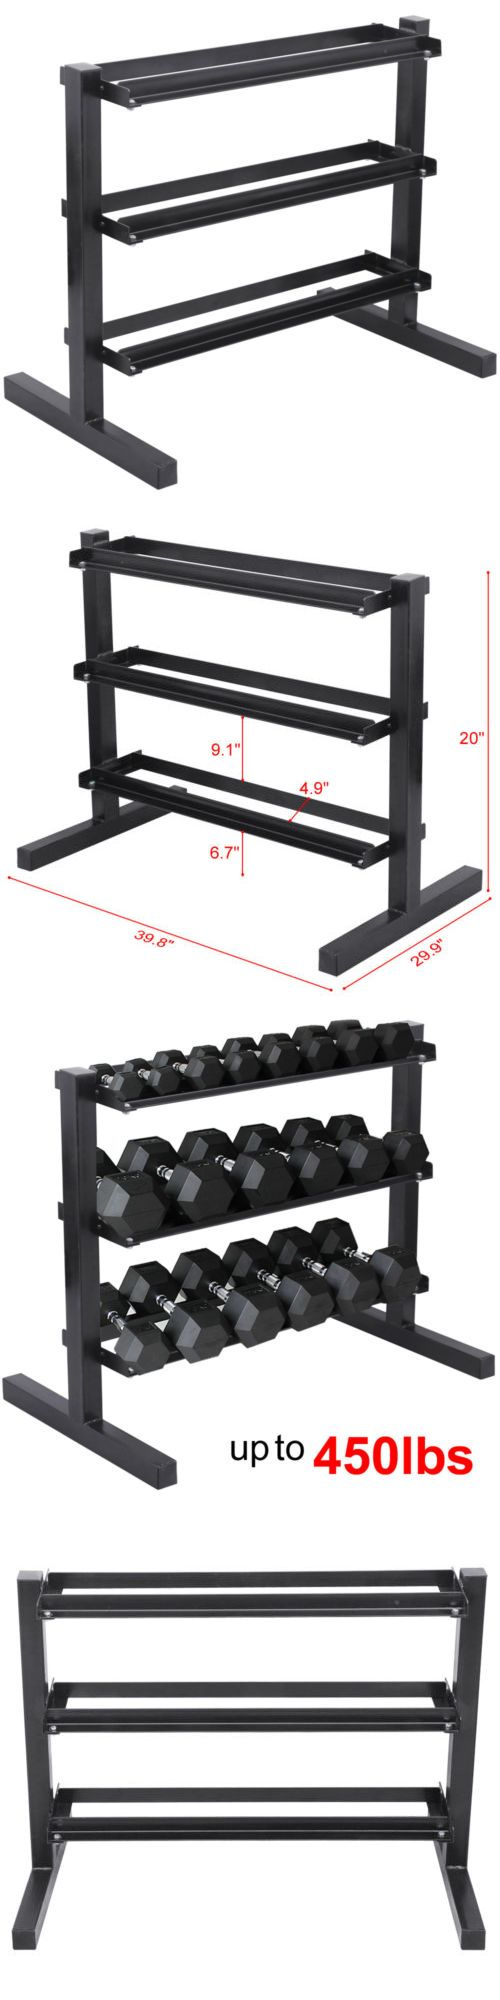 Weight Storage 179819: Fitness 3 Tier Dumbbell Rack Stand For Workout Weights Personal Gym Storage Us -> BUY IT NOW ONLY: $62.59 on eBay!